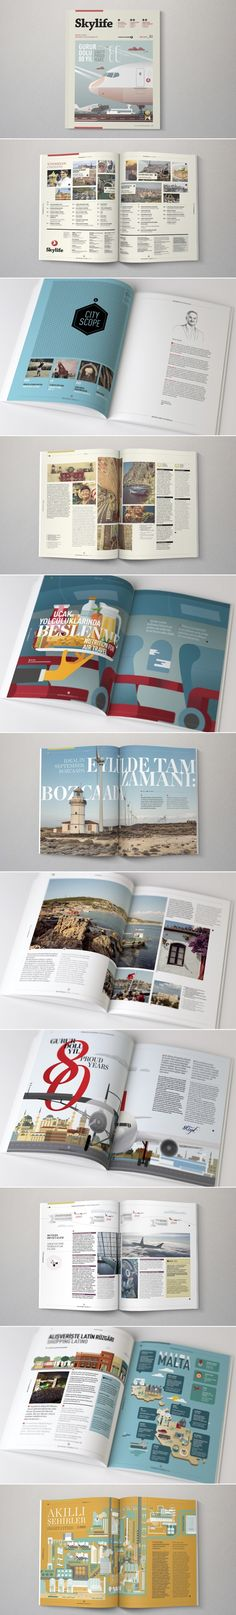 Turkish Airlines: Skylife Inflight Magazine redesign by The Design Surgery